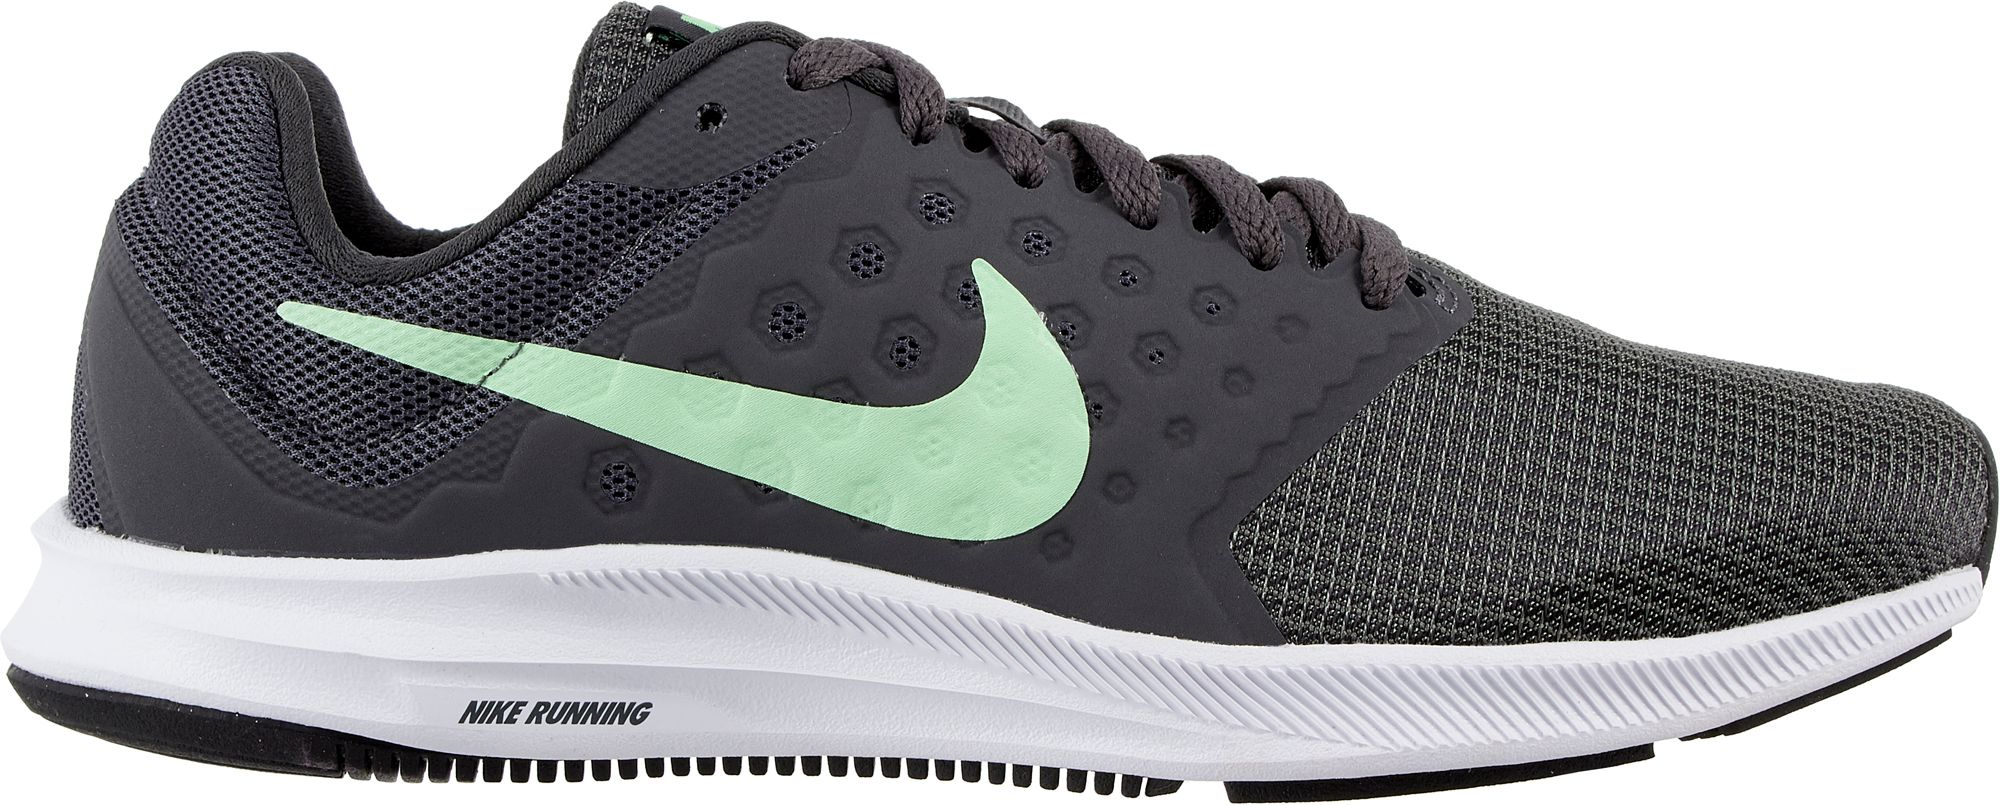 Nike Downshifter 7 Running Sneaker